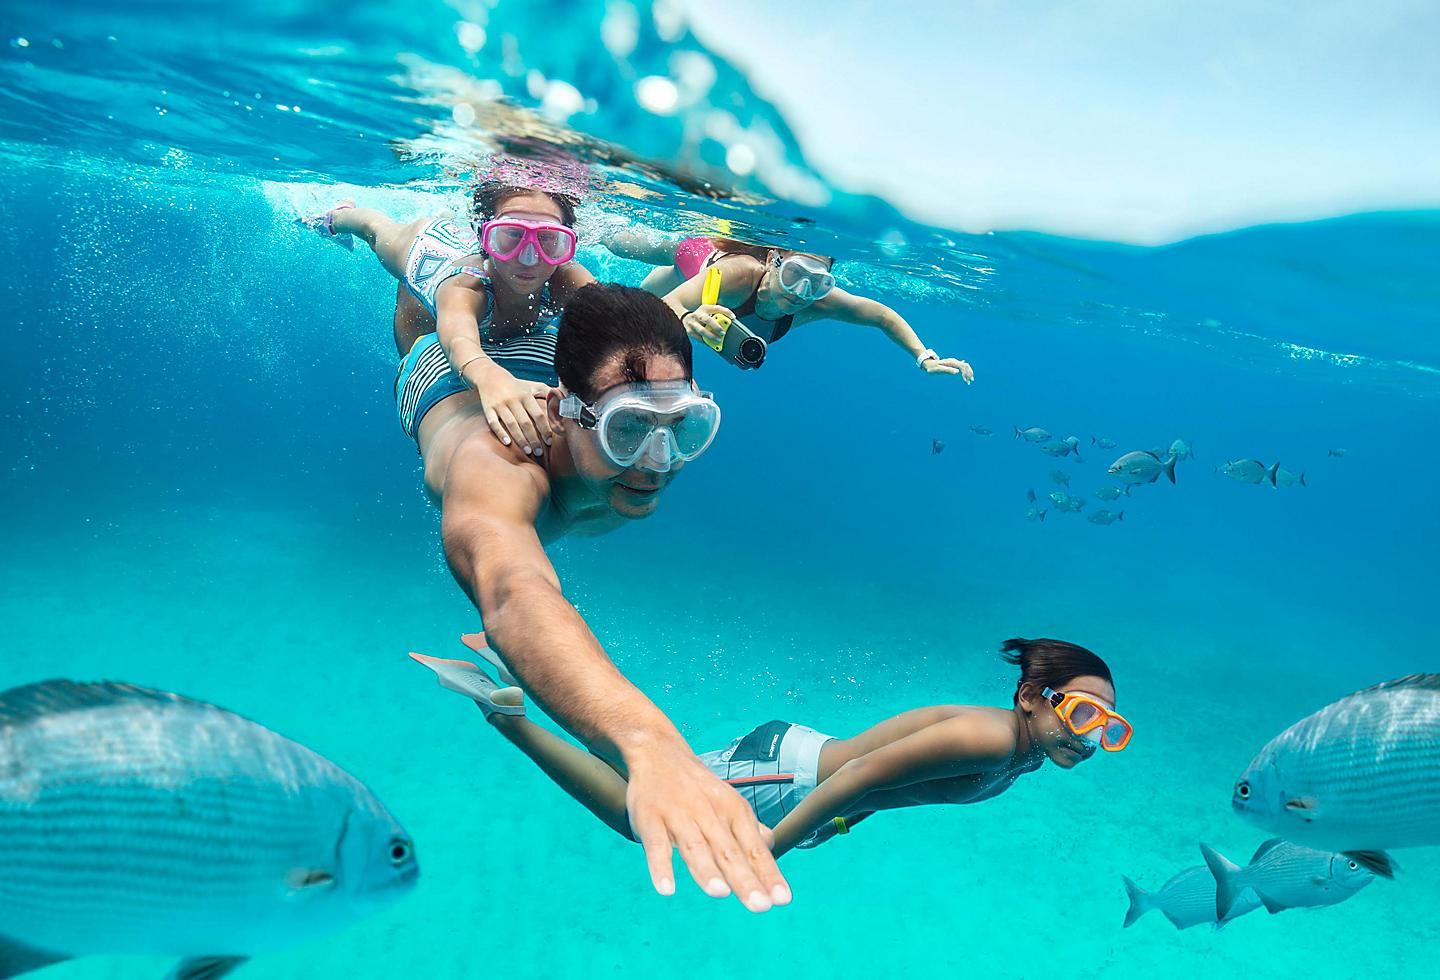 Family Snorkeling in Crystal Clear Waters, Perfect Day Island, Cococay, Bahamas